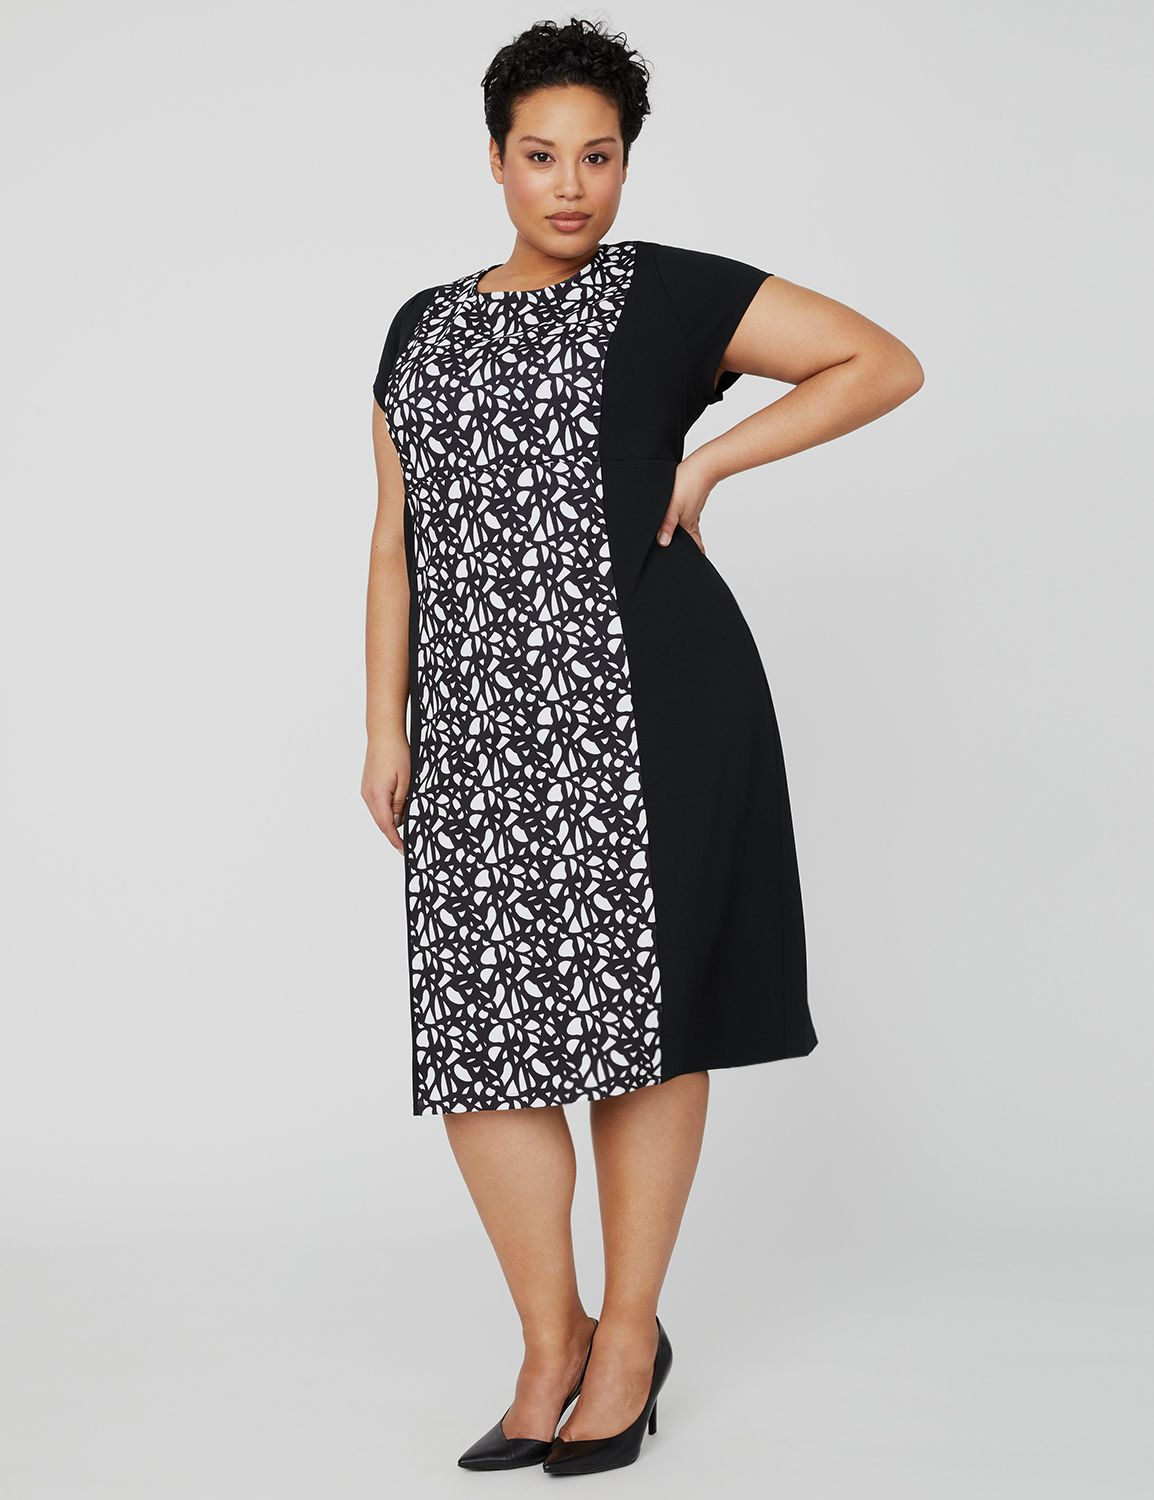 Mirage Crepe Dress 1091427 Printed Knit Crepe Dress MP-300100788